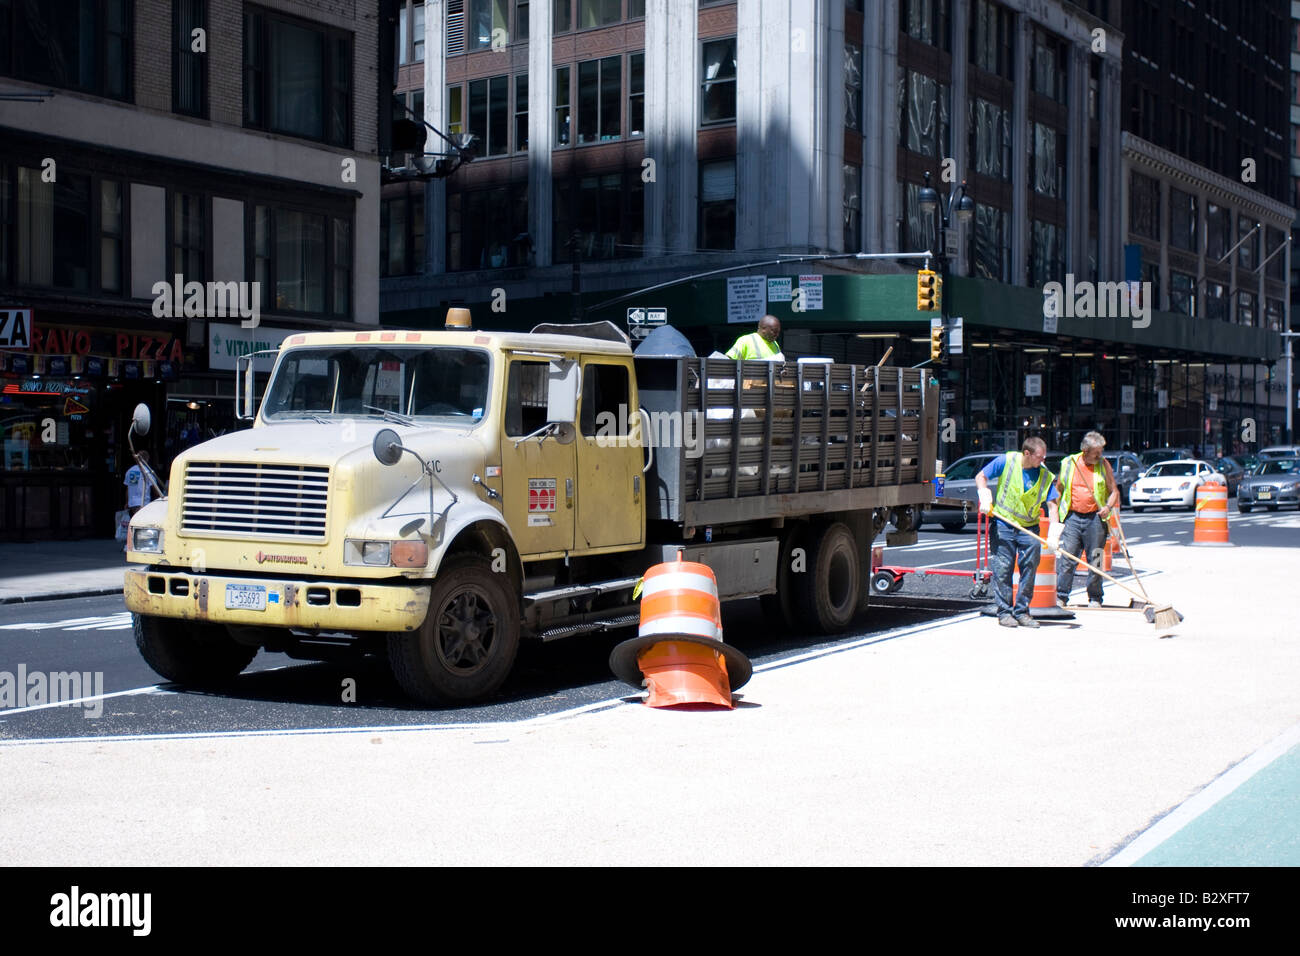 A New York City Department of transportation truck and road crew in Manhattan, New York. - Stock Image